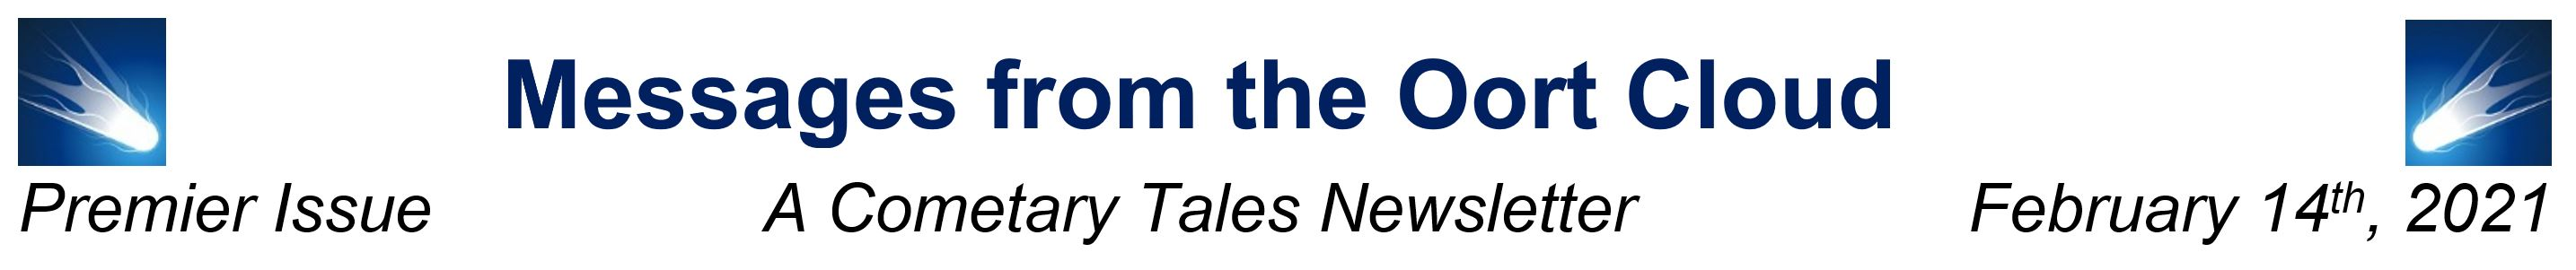 Banner Headline for the Newsletter, flanked by small icons of a white comet on a blue background. Reads:  Messages from the Oort Cloud: A Cometary Tales Newsletter. Premier Issue. February 14th, 2021.